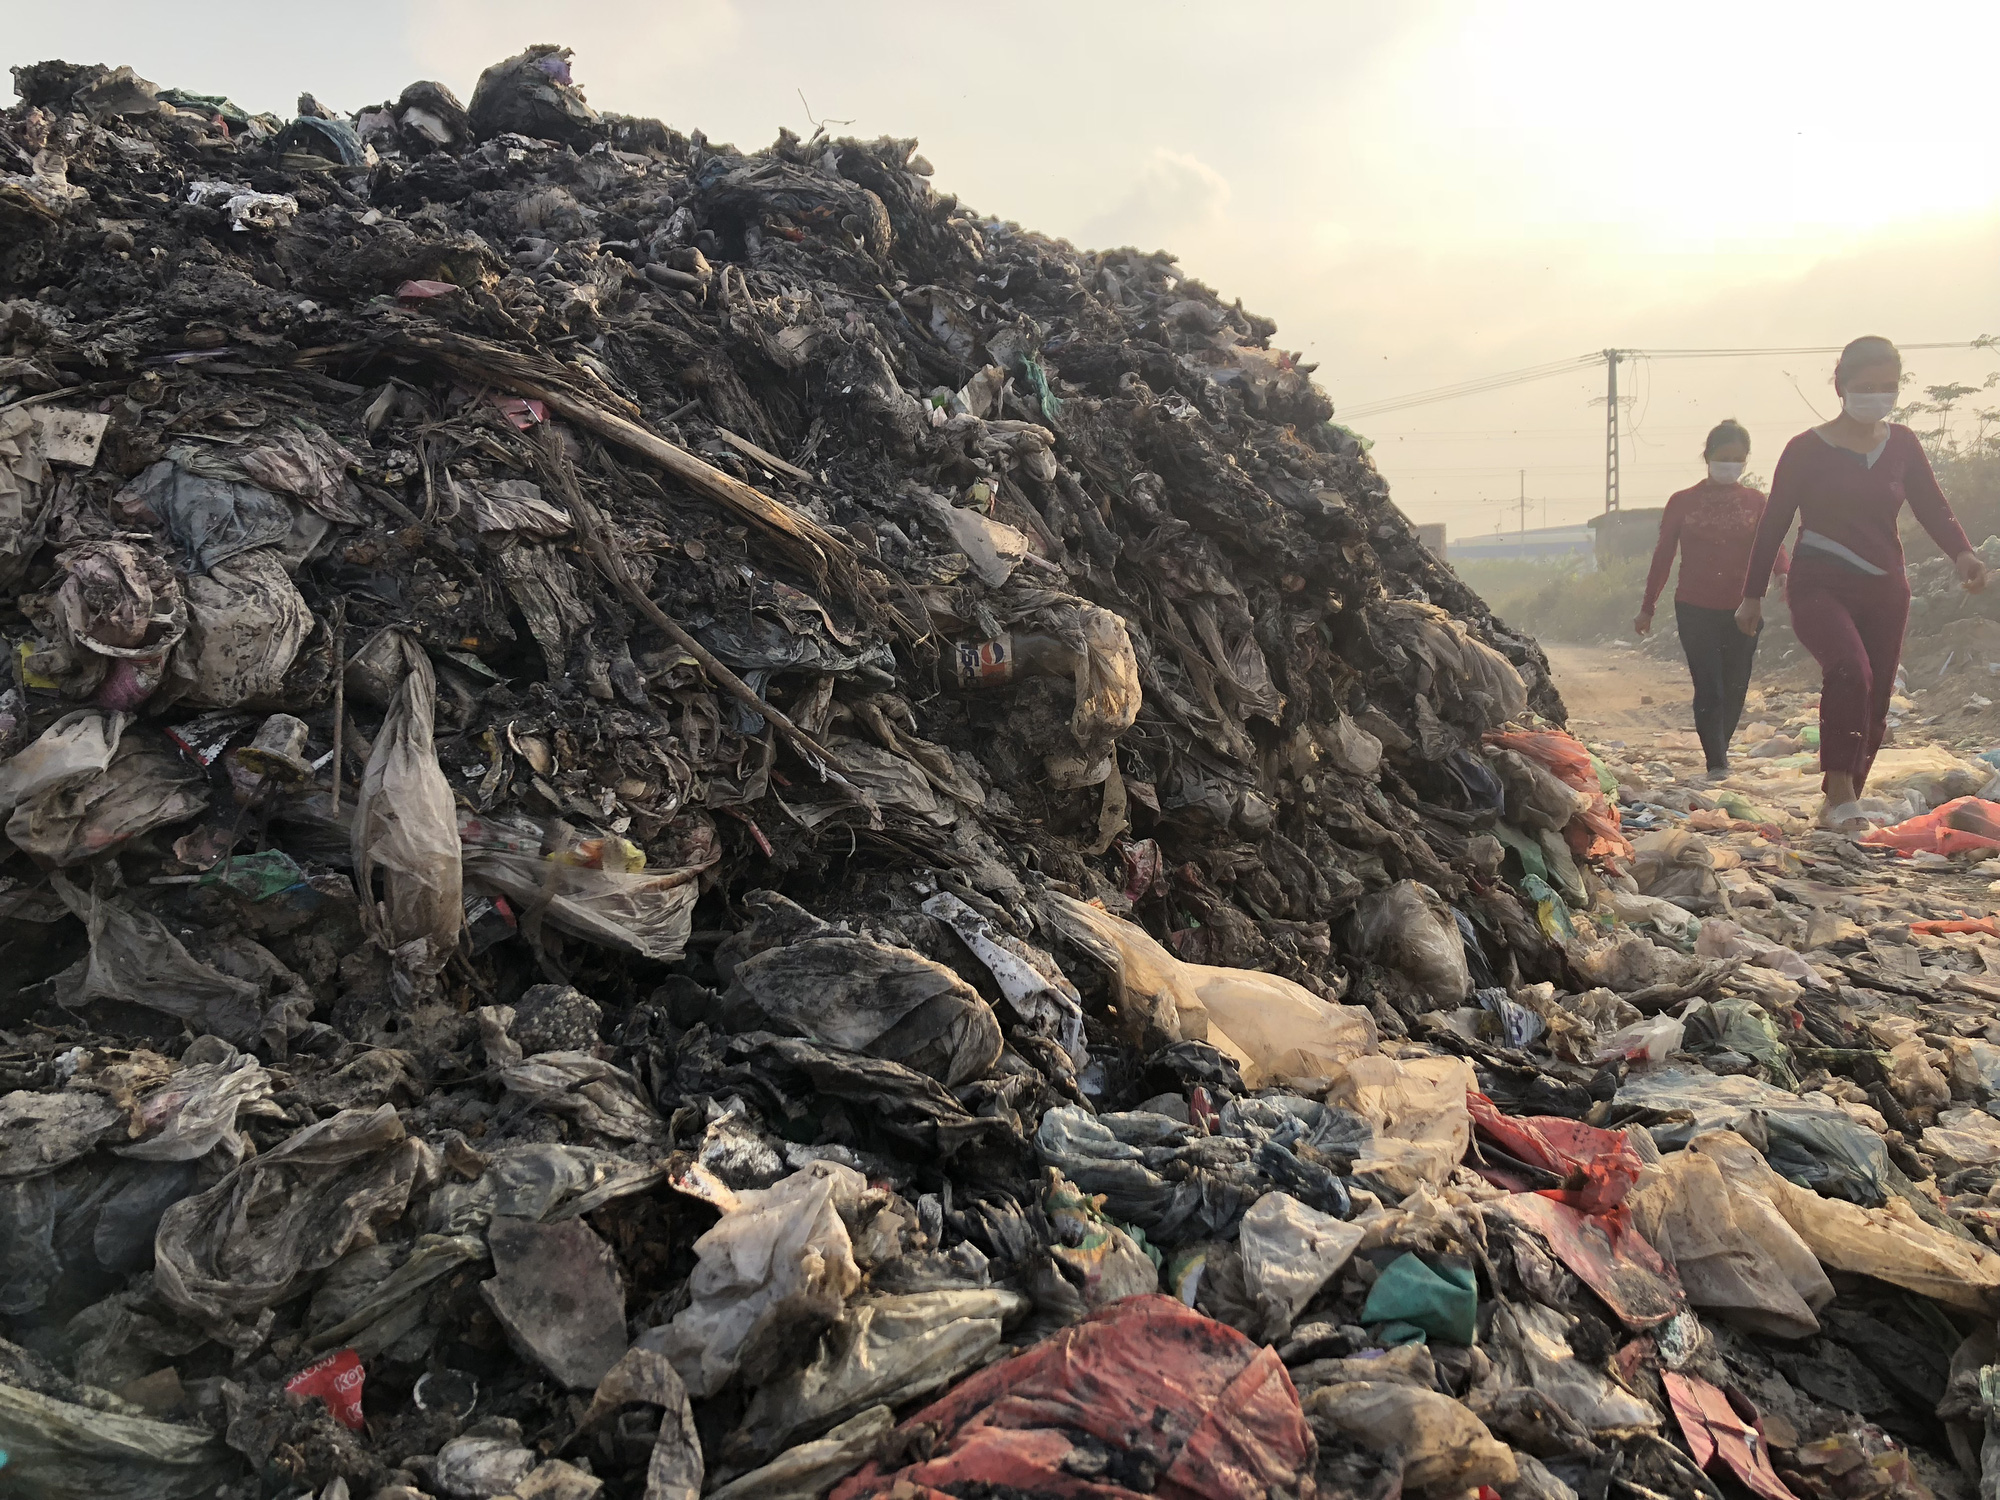 A pile of burned garbage on the side of the road. Photo: Quang The / Tuoi Tre